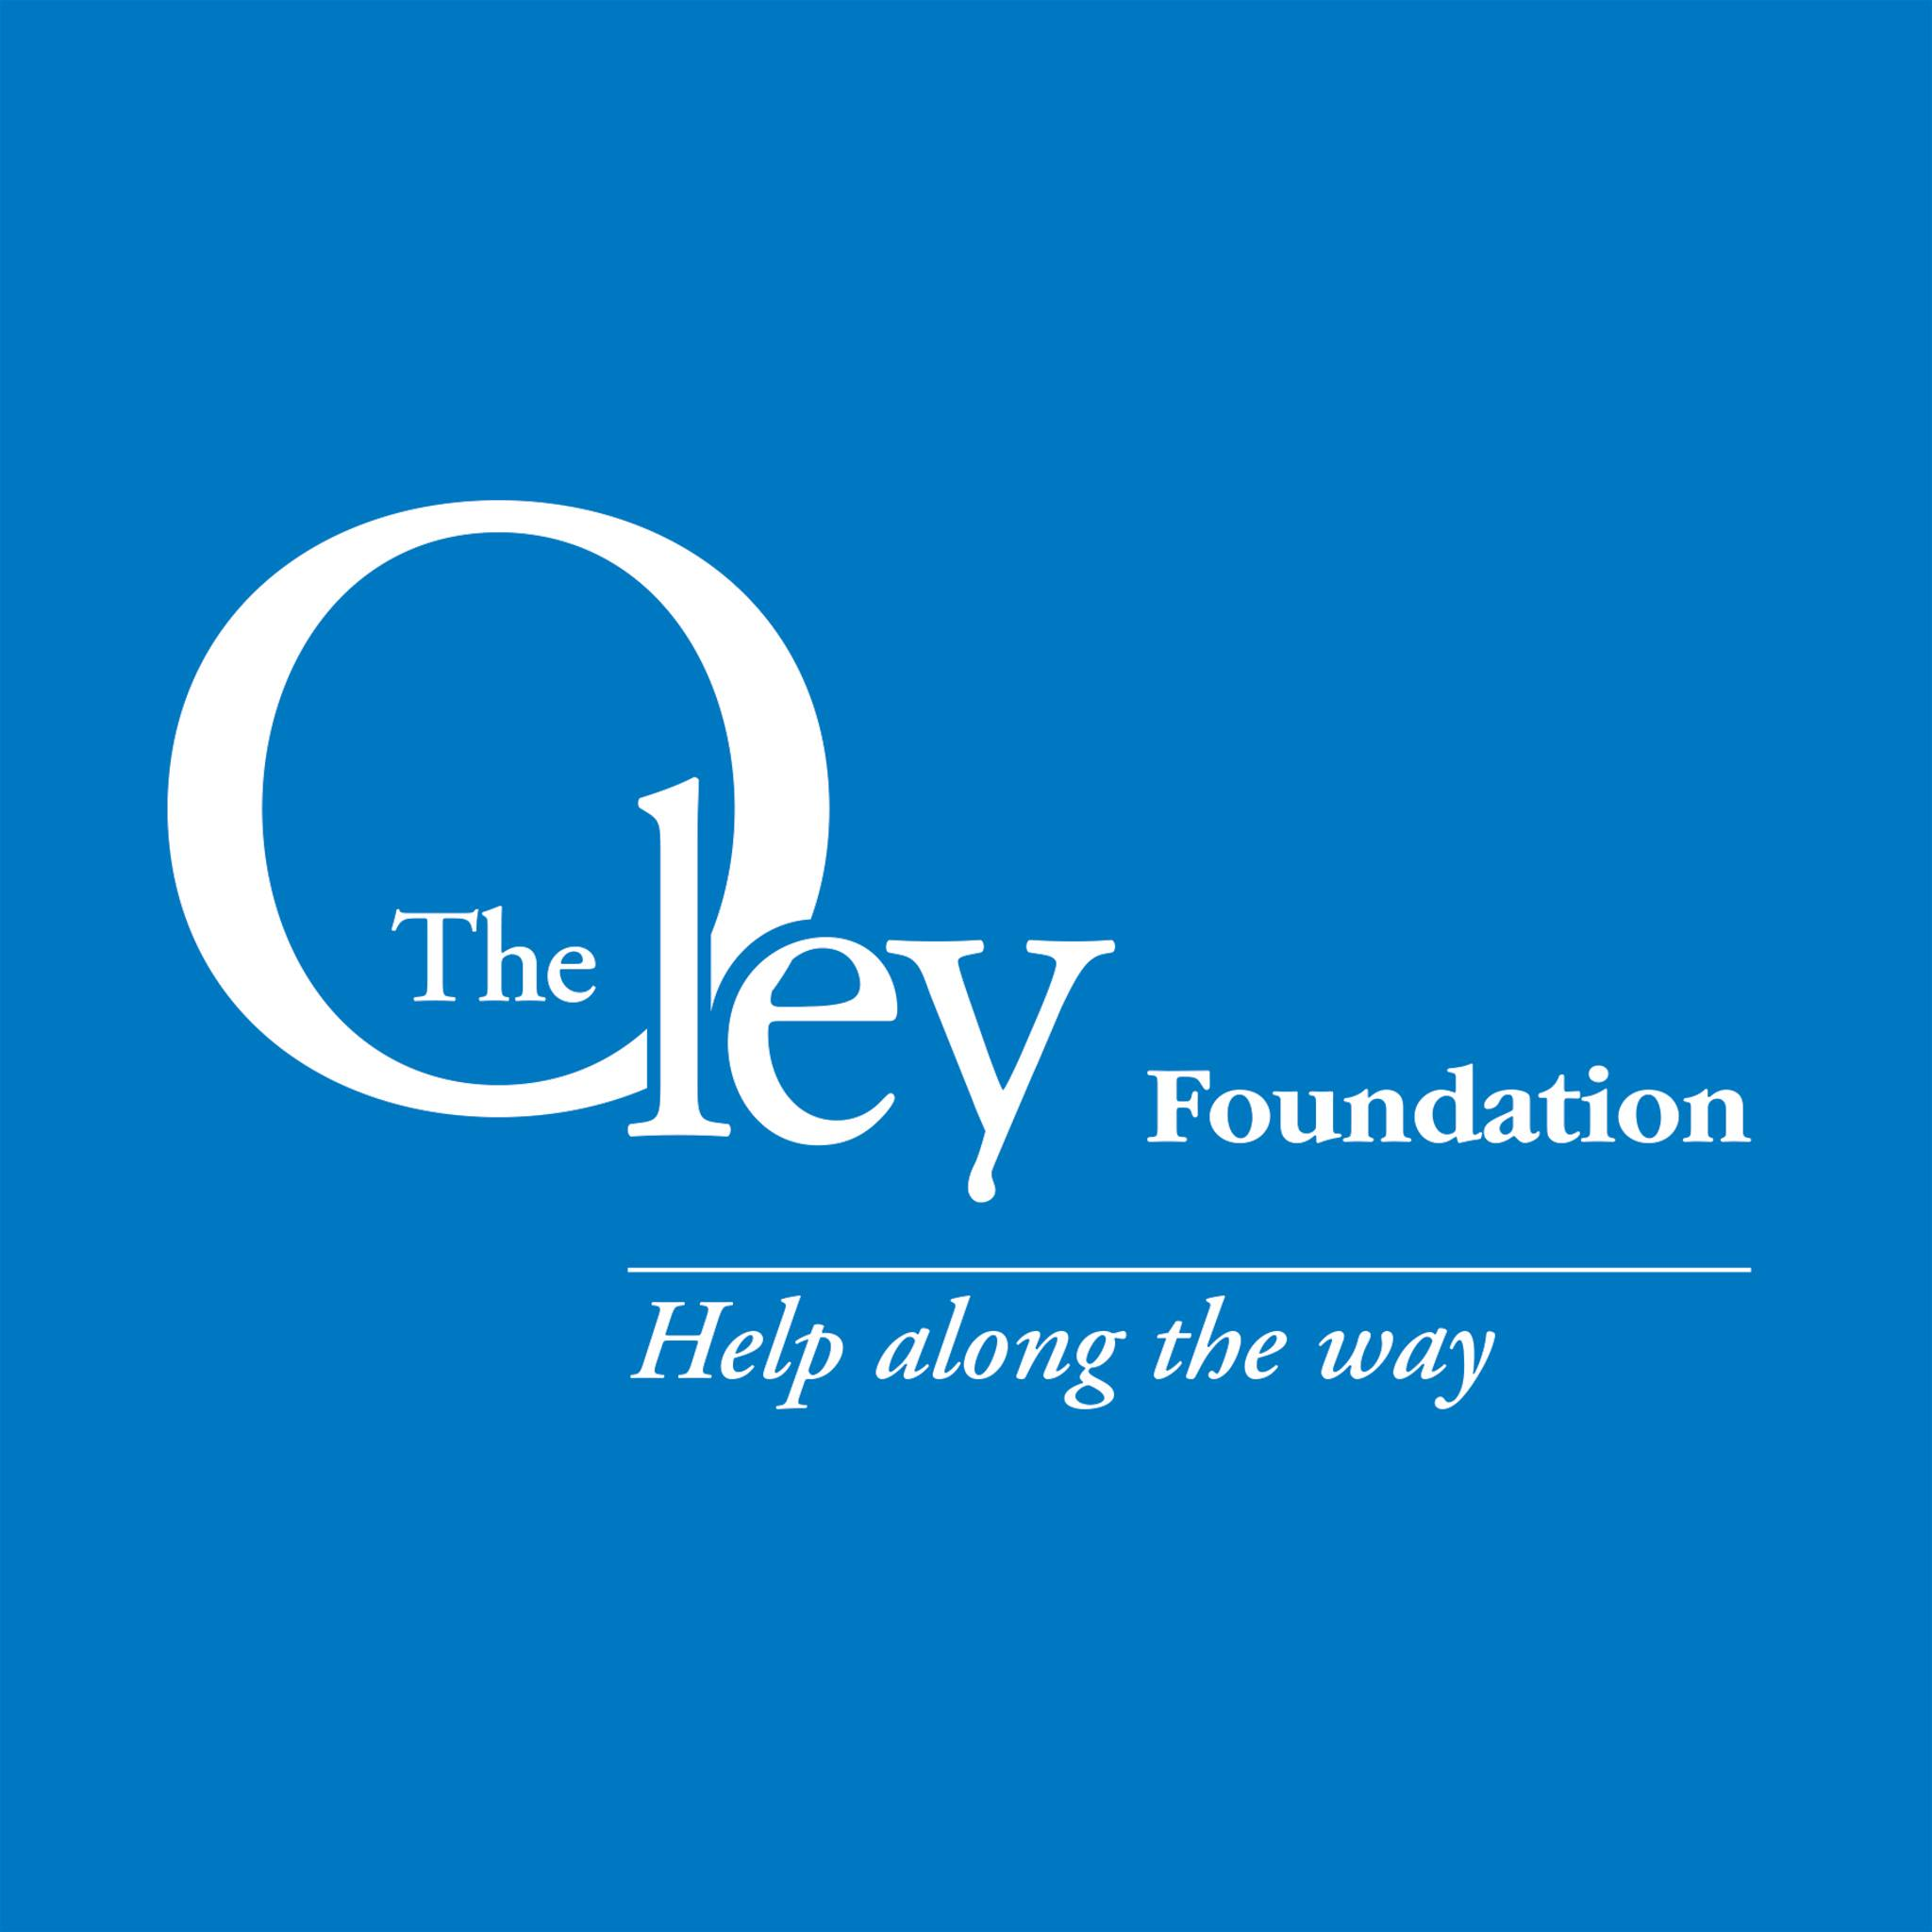 Oley Foundation